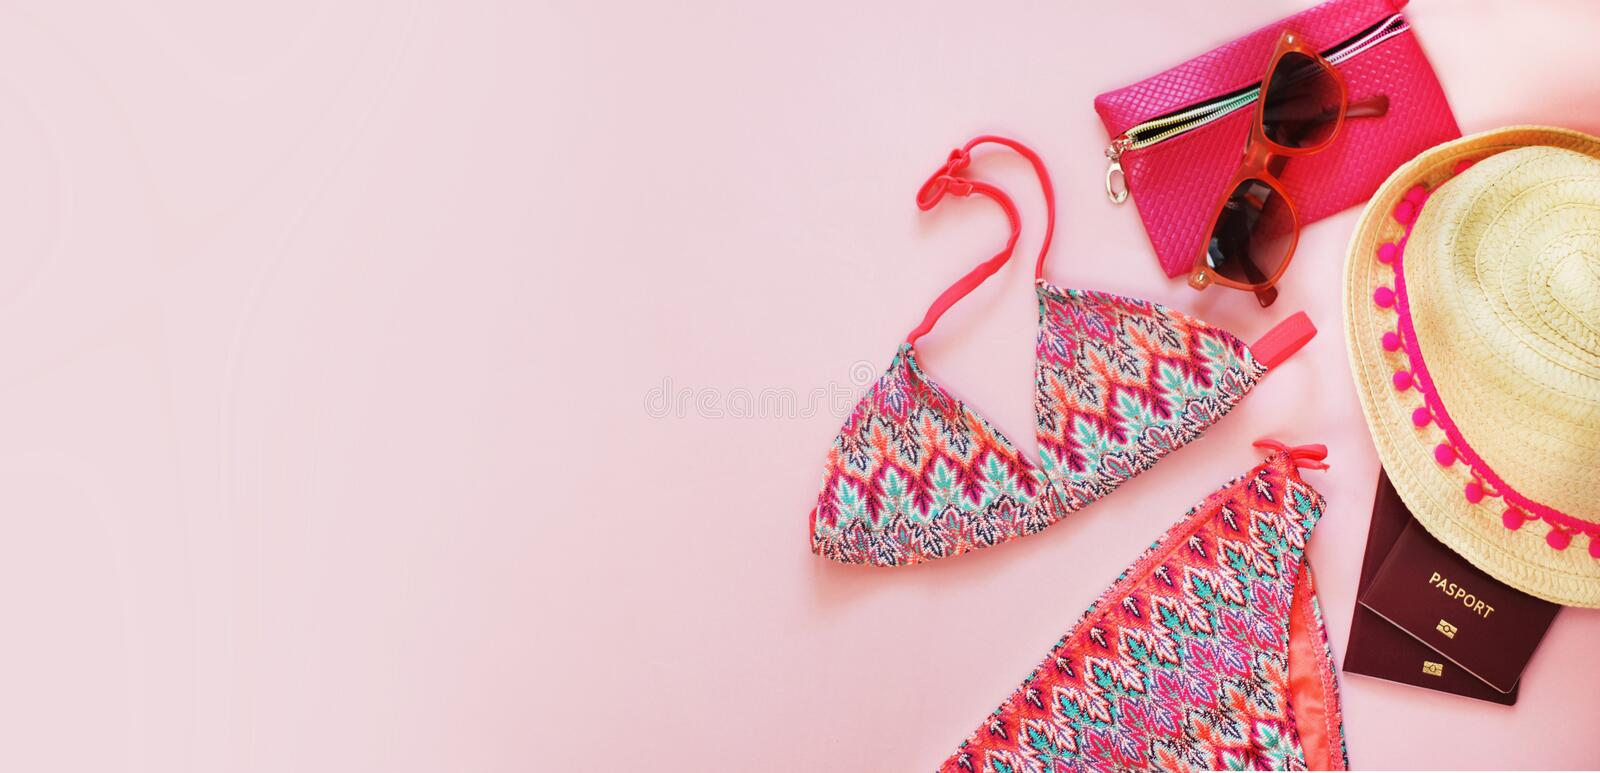 Summer Accessories, Straw hat with Pink ribbon, Swimsuit, Sunglasses, Passport, over Pink Background. Baner. stock images